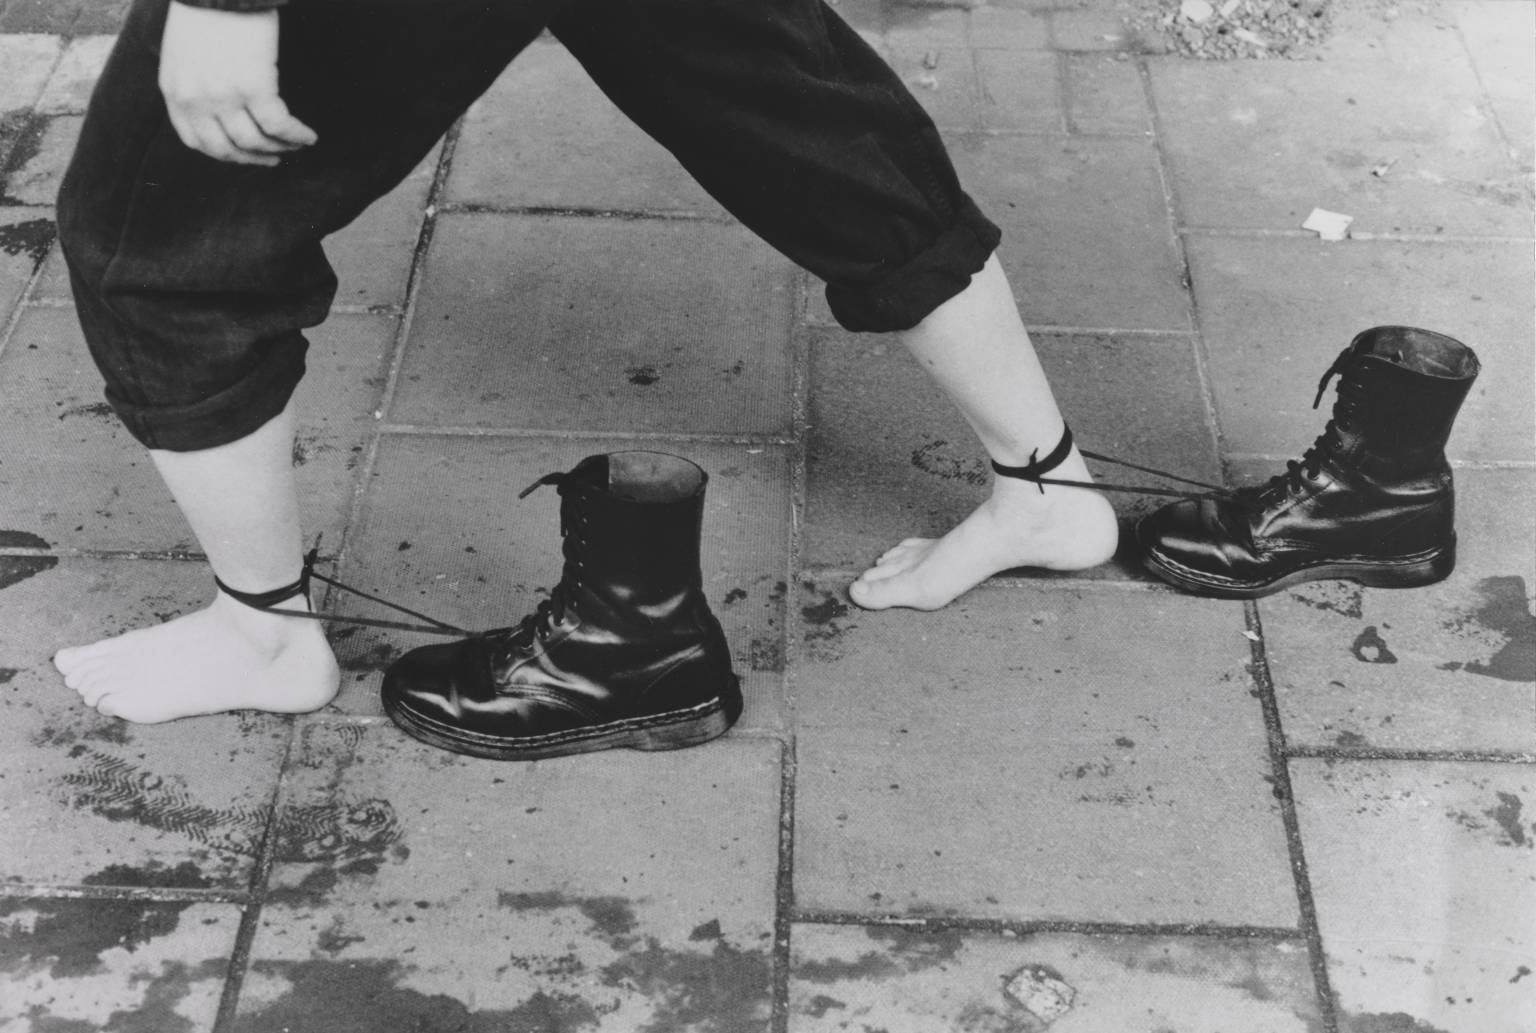 Performance Still 1985, printed 1995 by Mona Hatoum born 1952